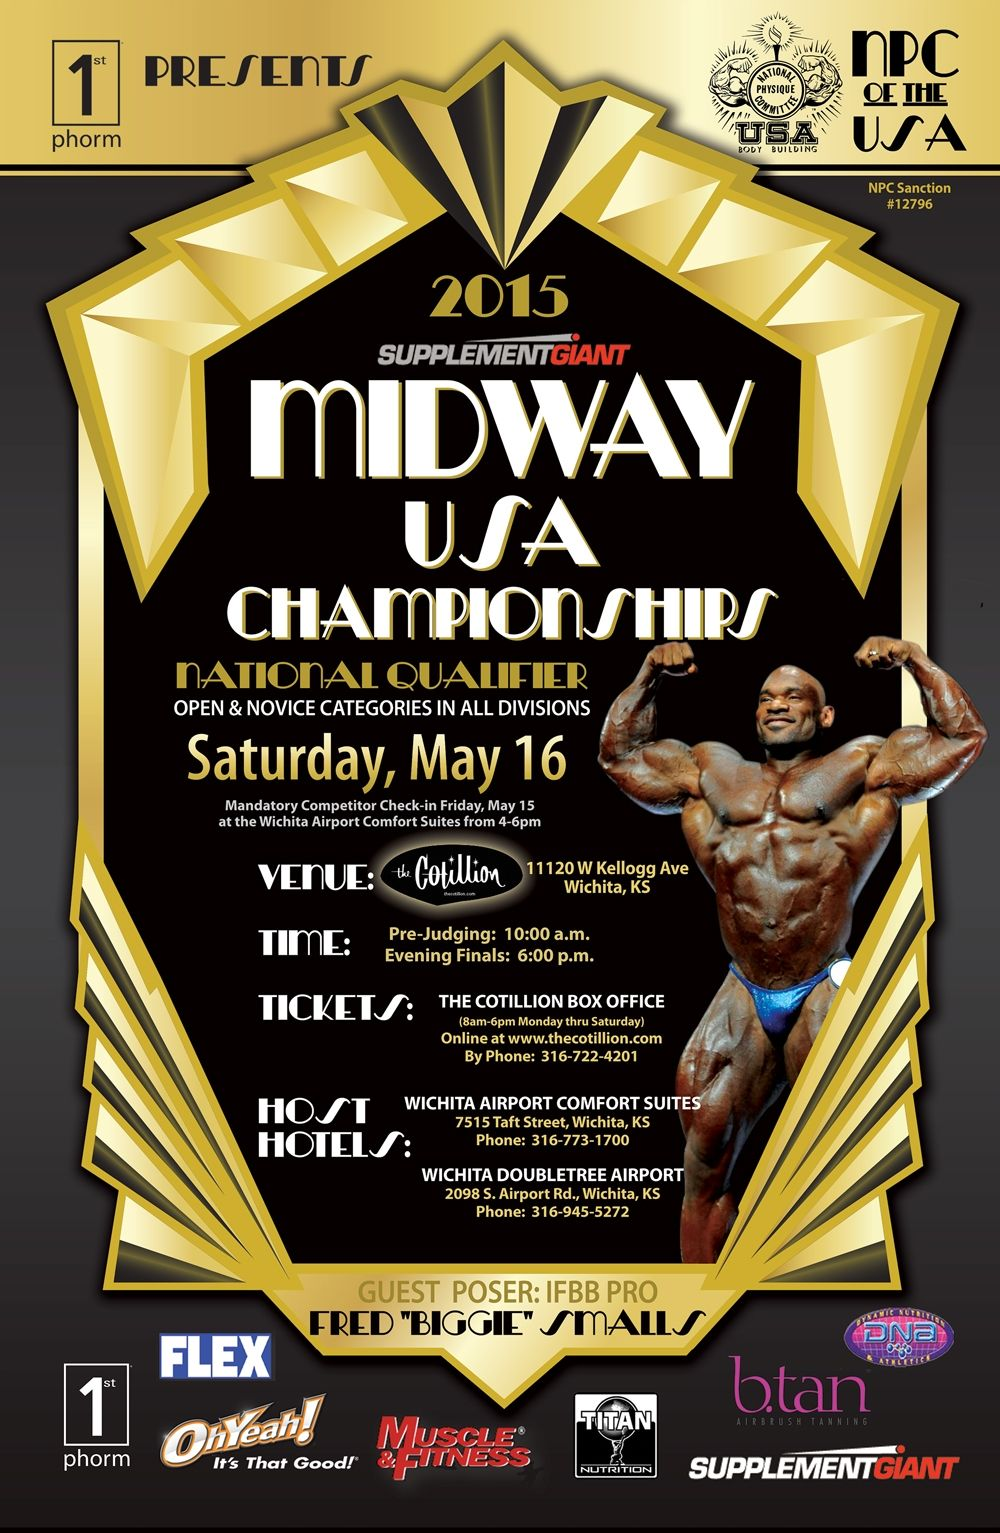 This Event Features Both National Qualifying And Novice Divisions The Host Hotels For This Event Are The Wichita Doubletree A Concert Flyer Wichita Midway Usa